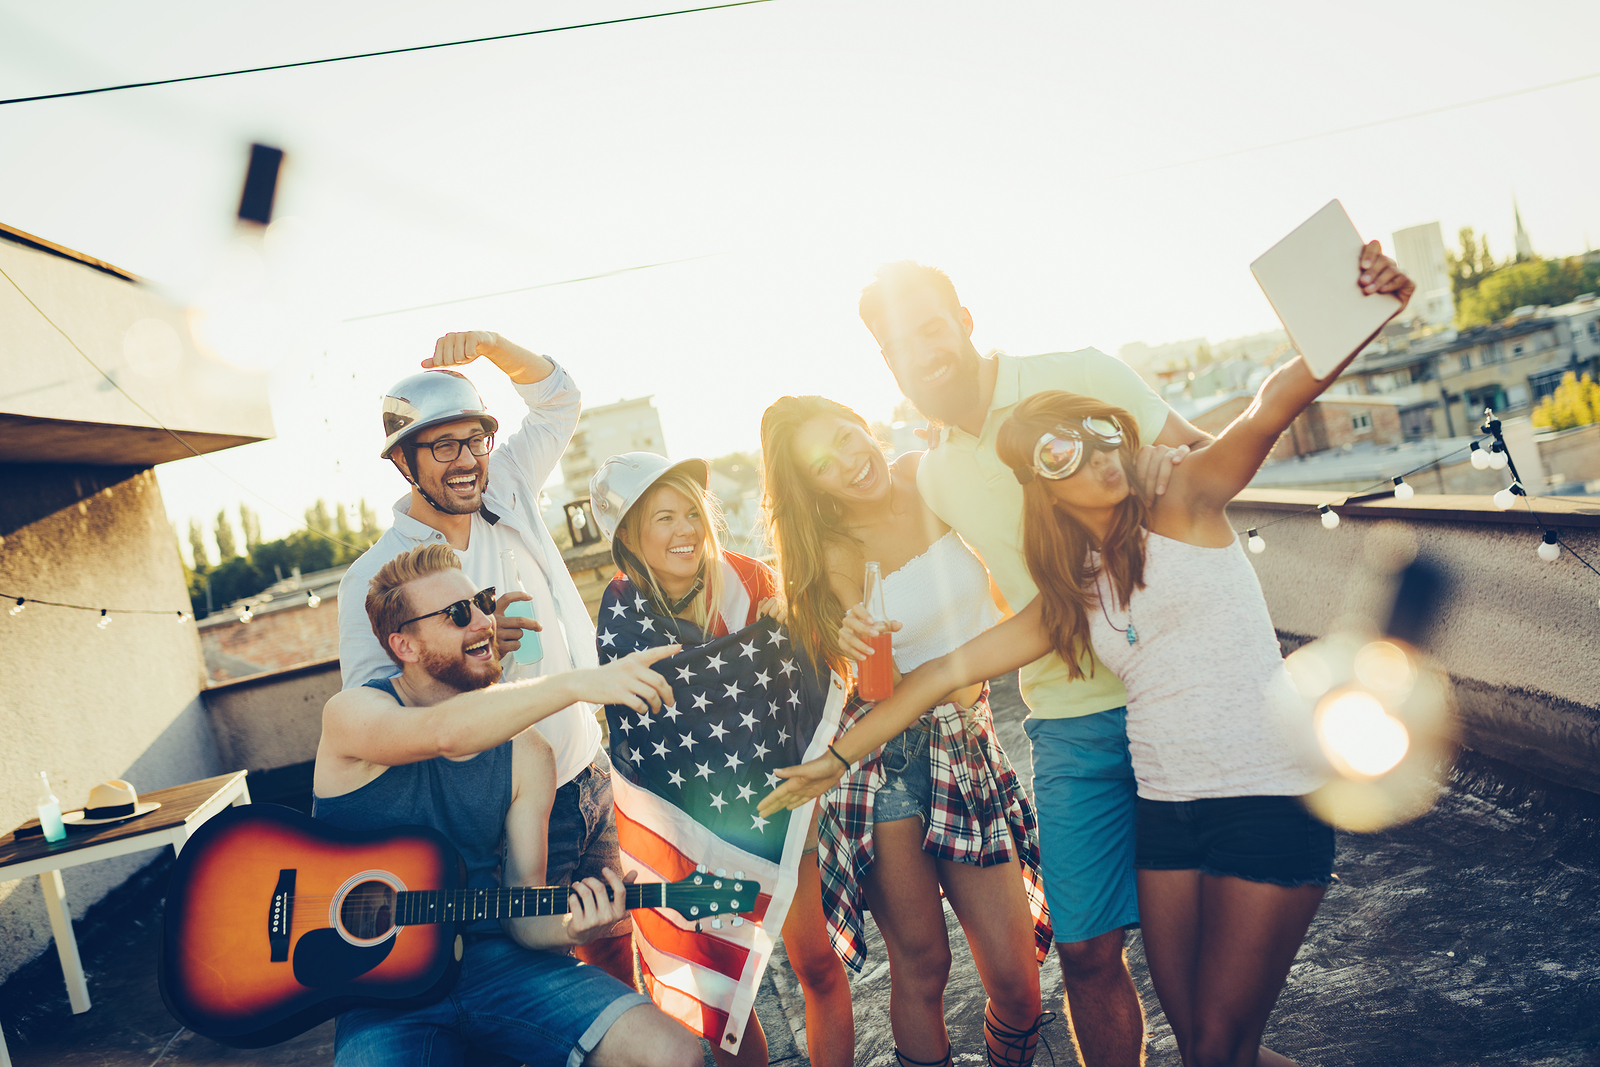 Pre-party tips for a waste free shindig